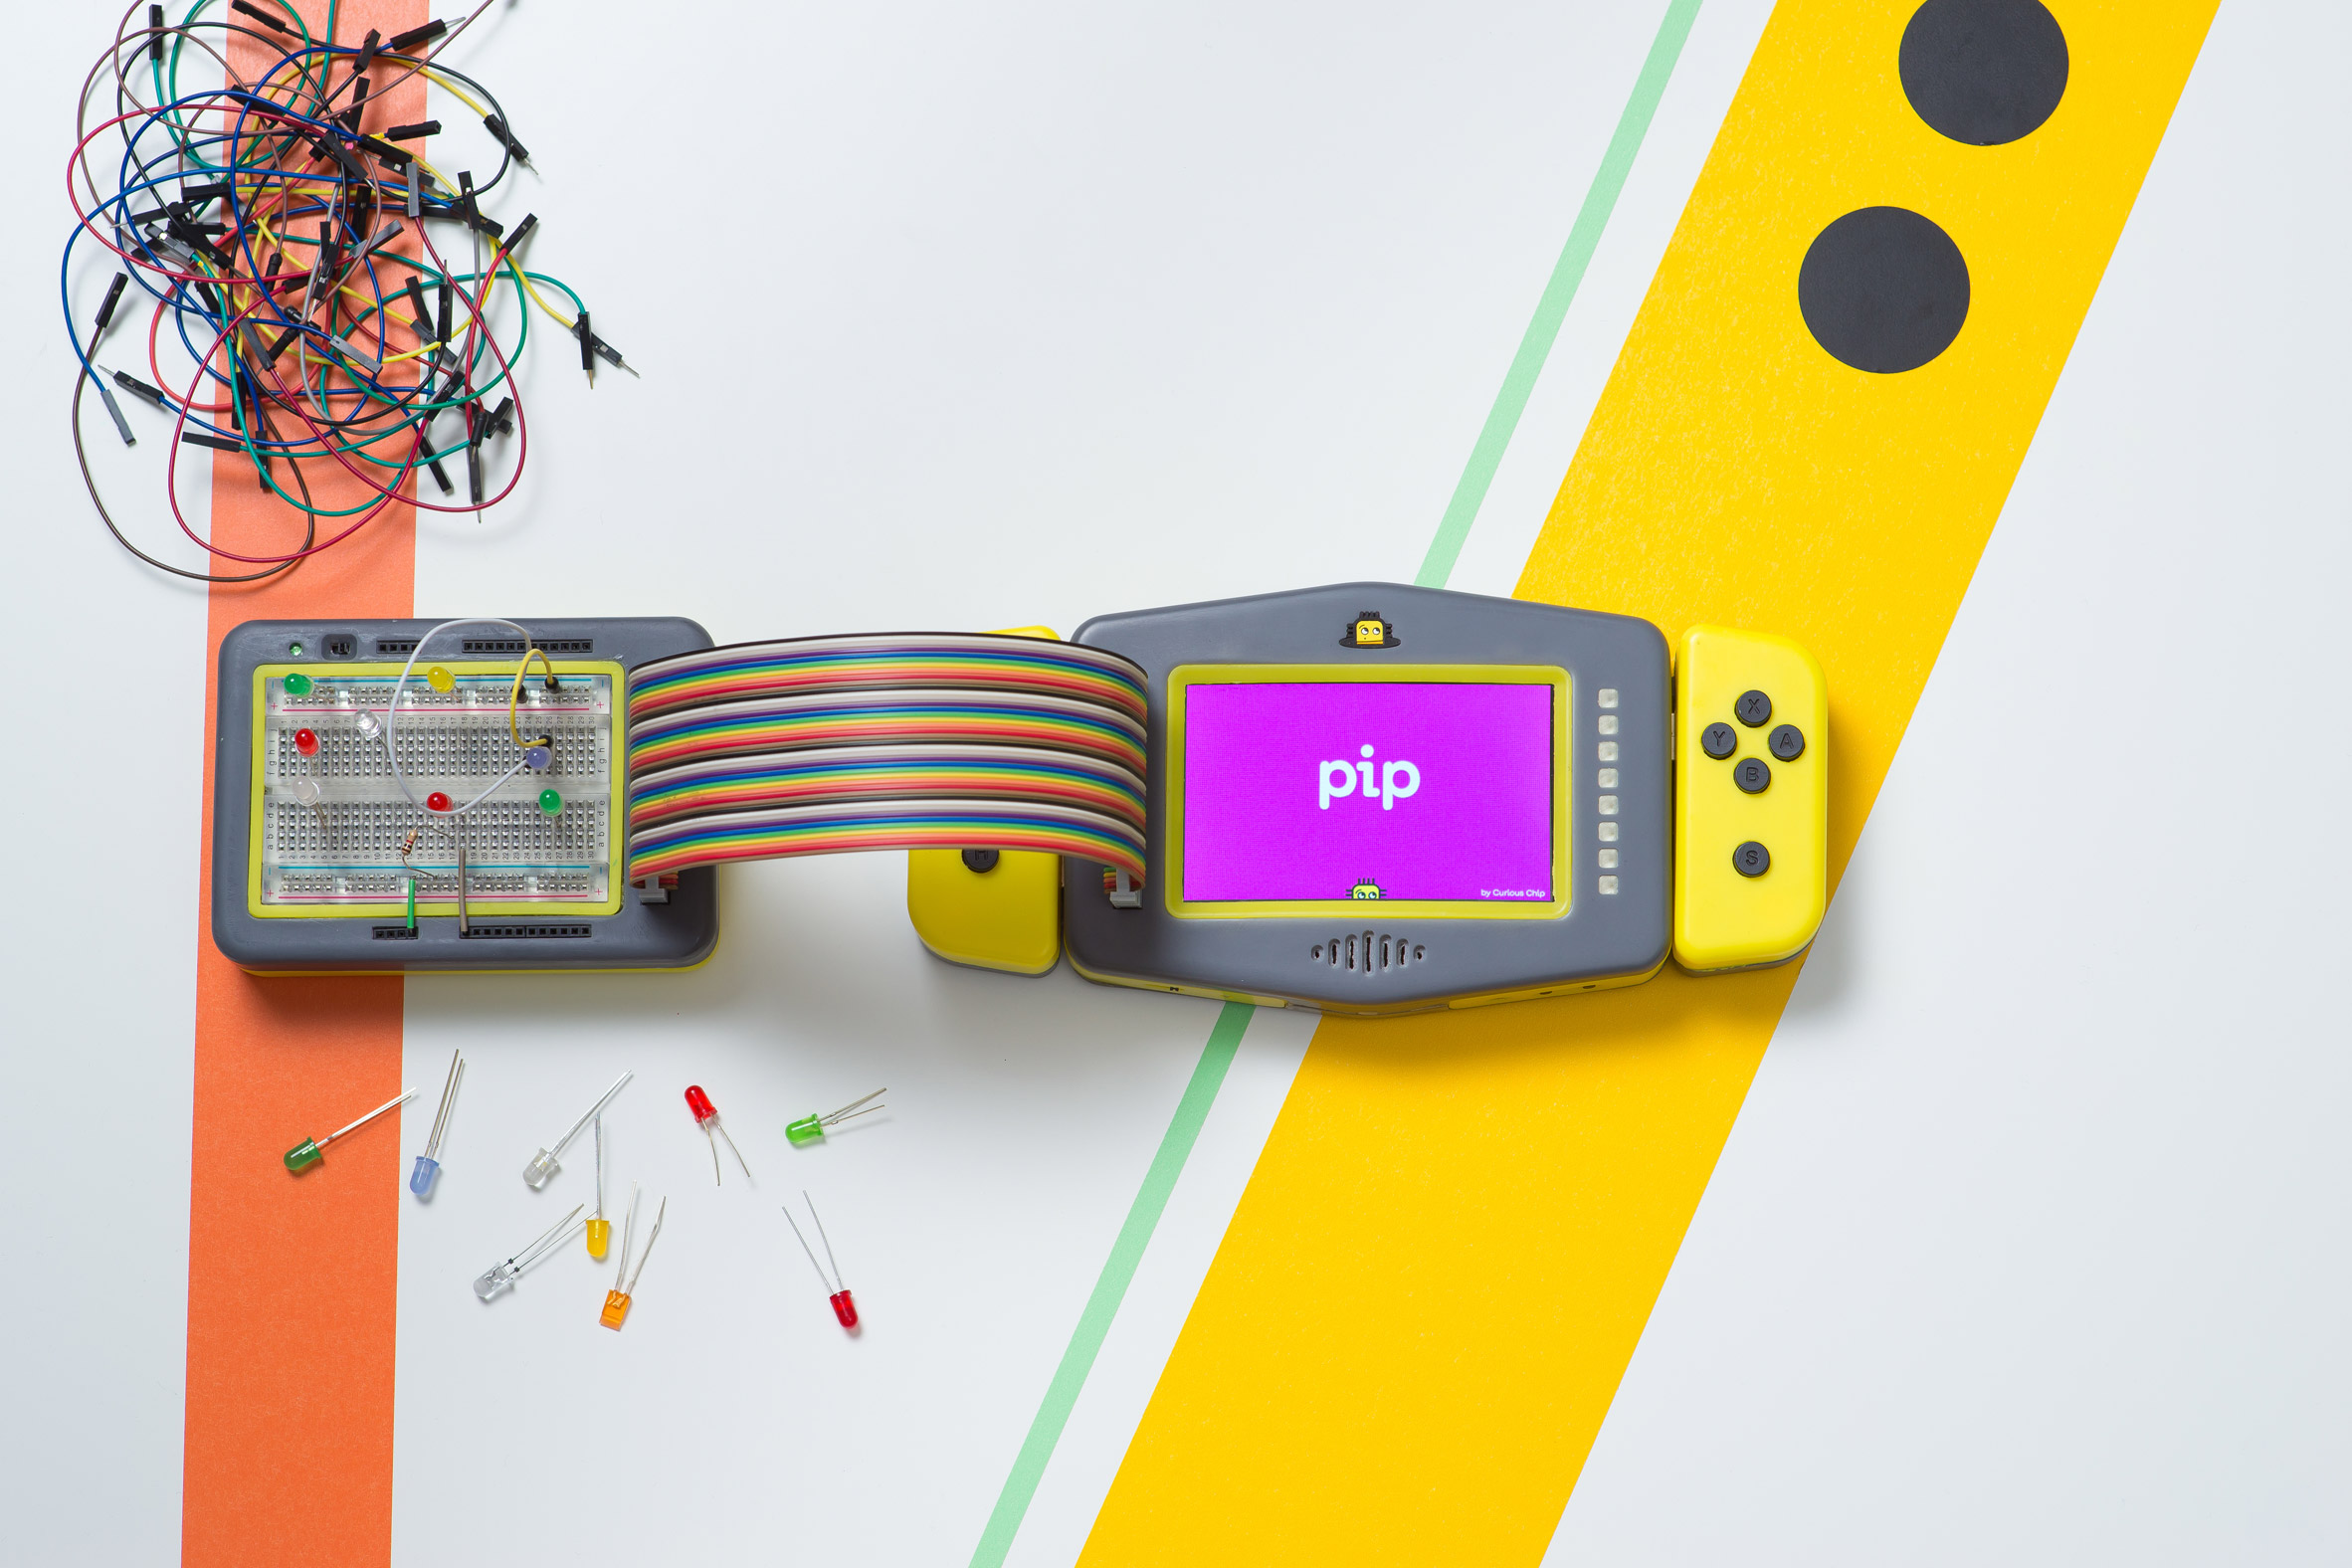 Pip is a portable gaming device that teaches children to code